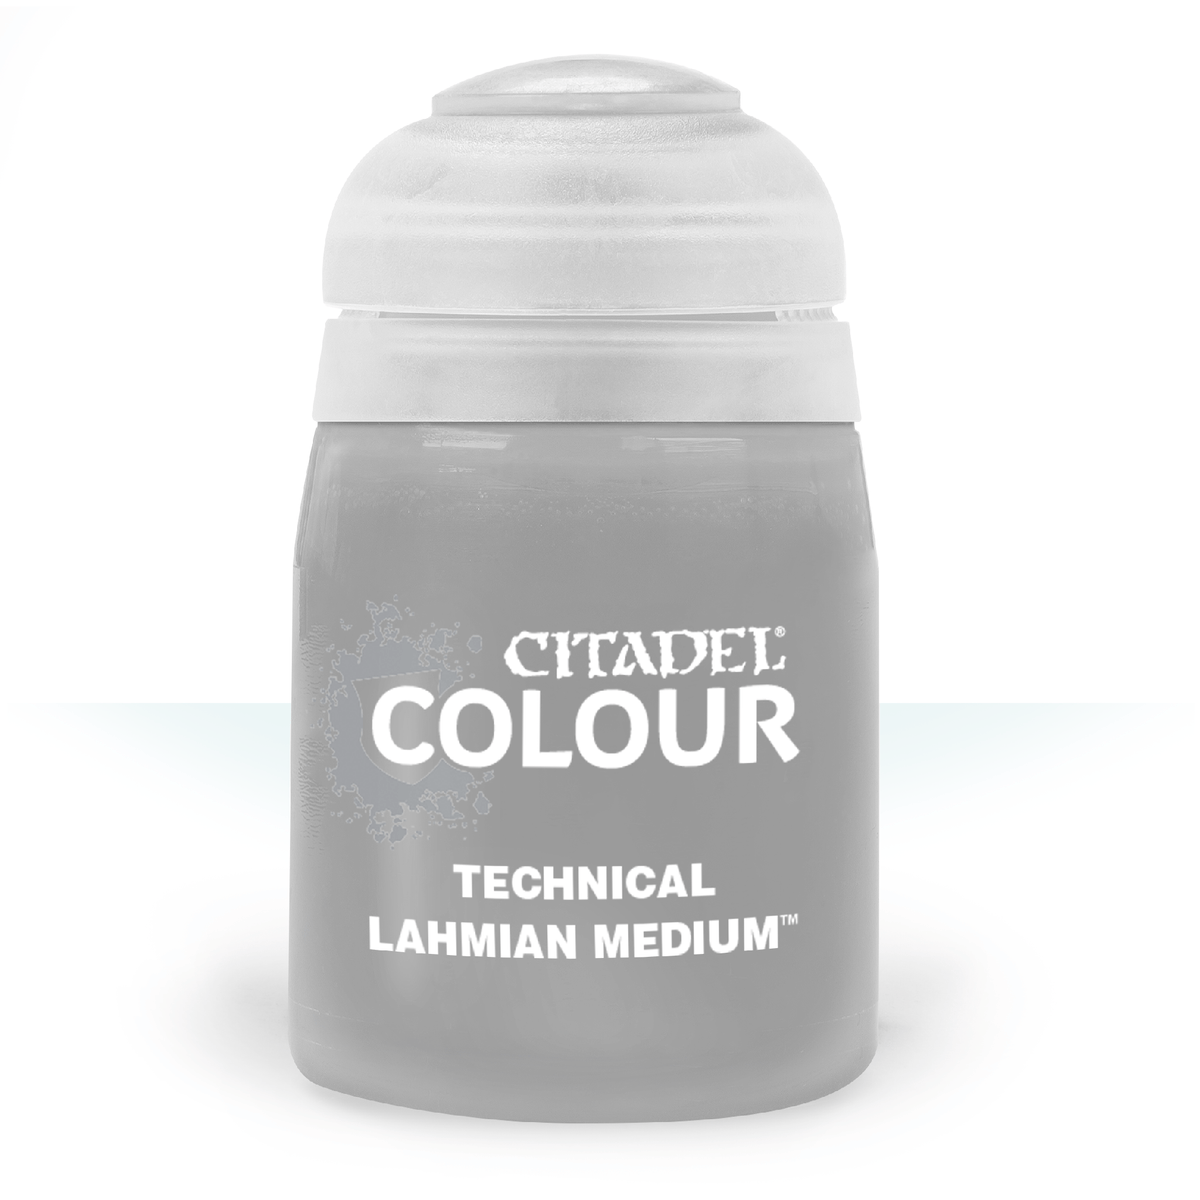 LAHMIAN MEDIUM - CITADEL TECHNICAL PAINT